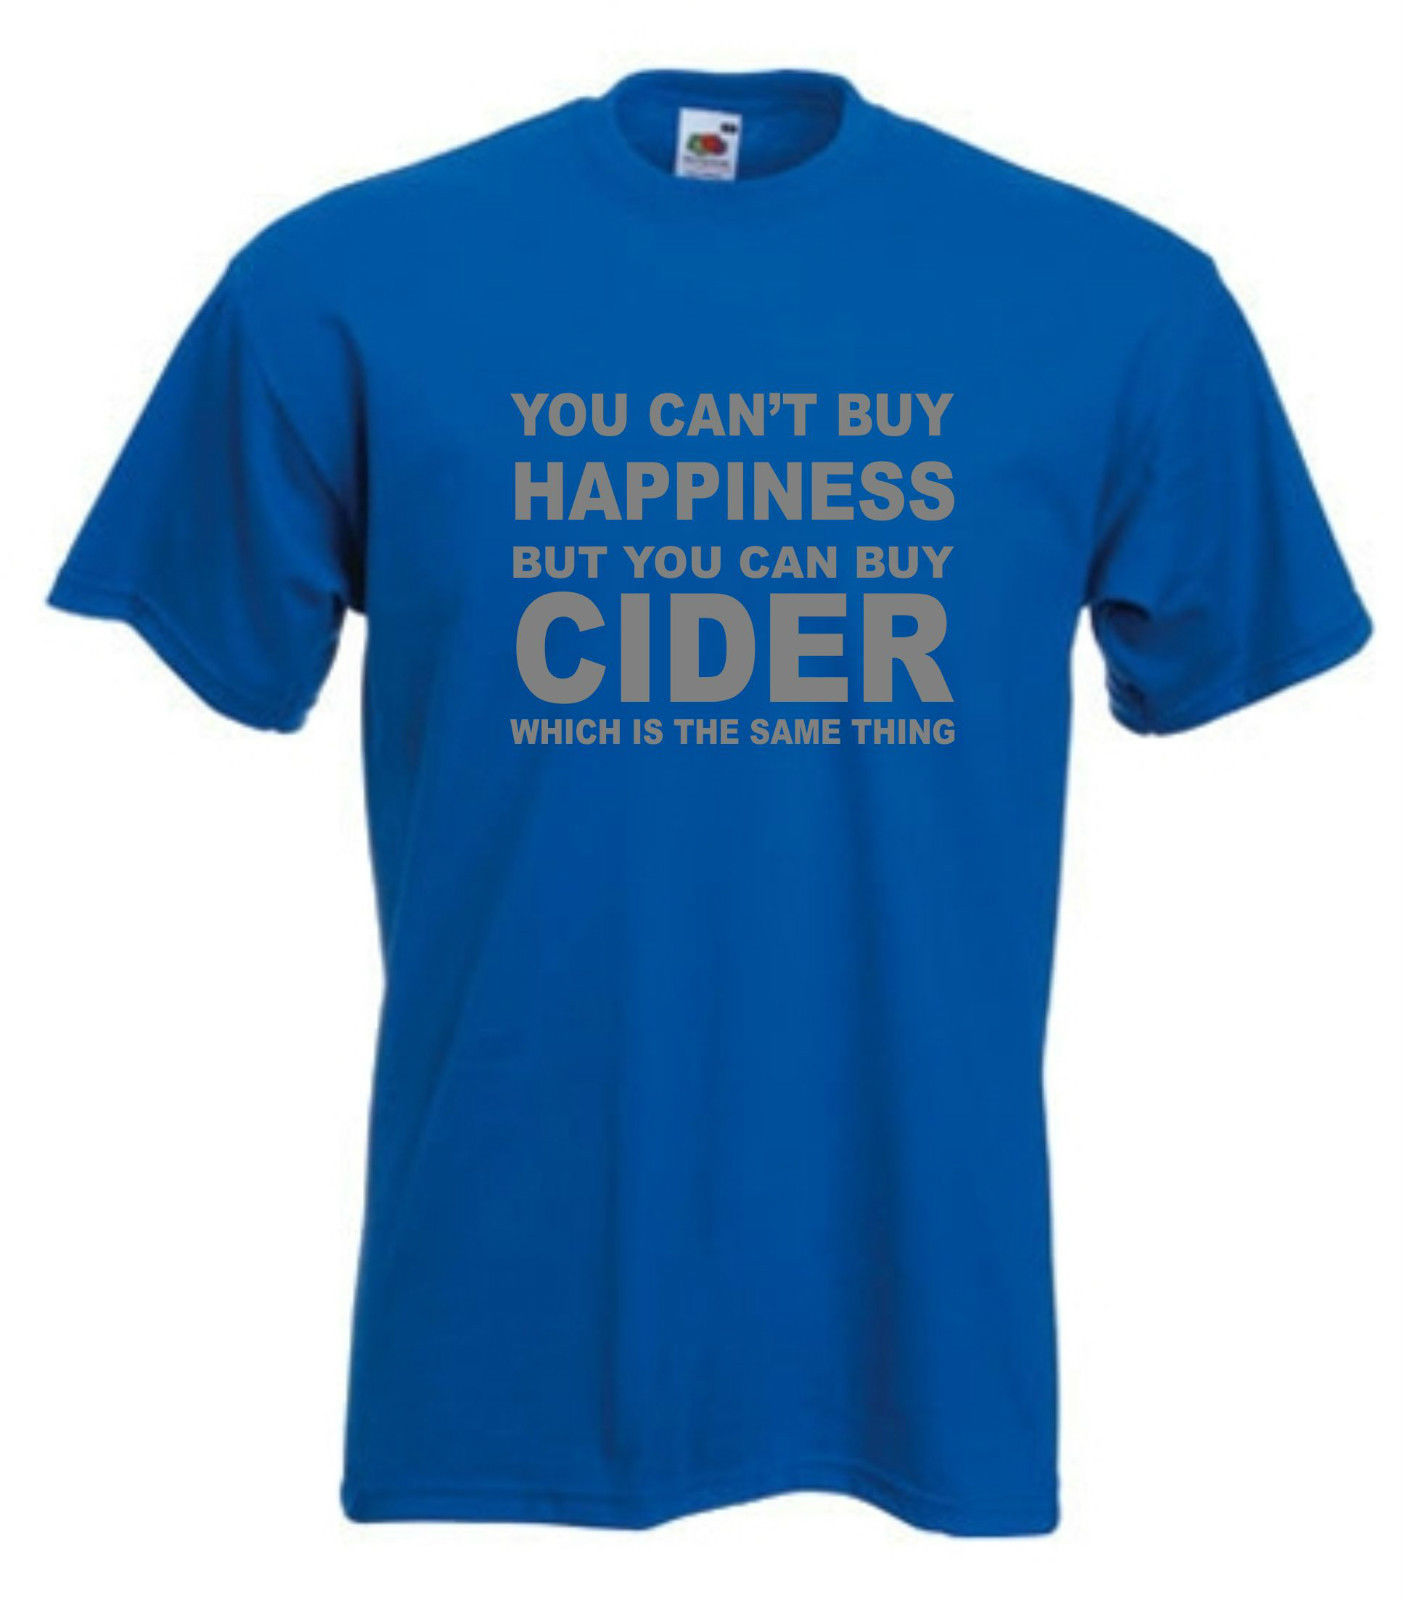 83da595c Cider T Shirt Funny Alcohol TShirt Drinking T Shirt Drunk Sizes S XXL T  Shirts Funny Tops Tee New Unisex Funny Tops-in T-Shirts from Men's Clothing  on ...